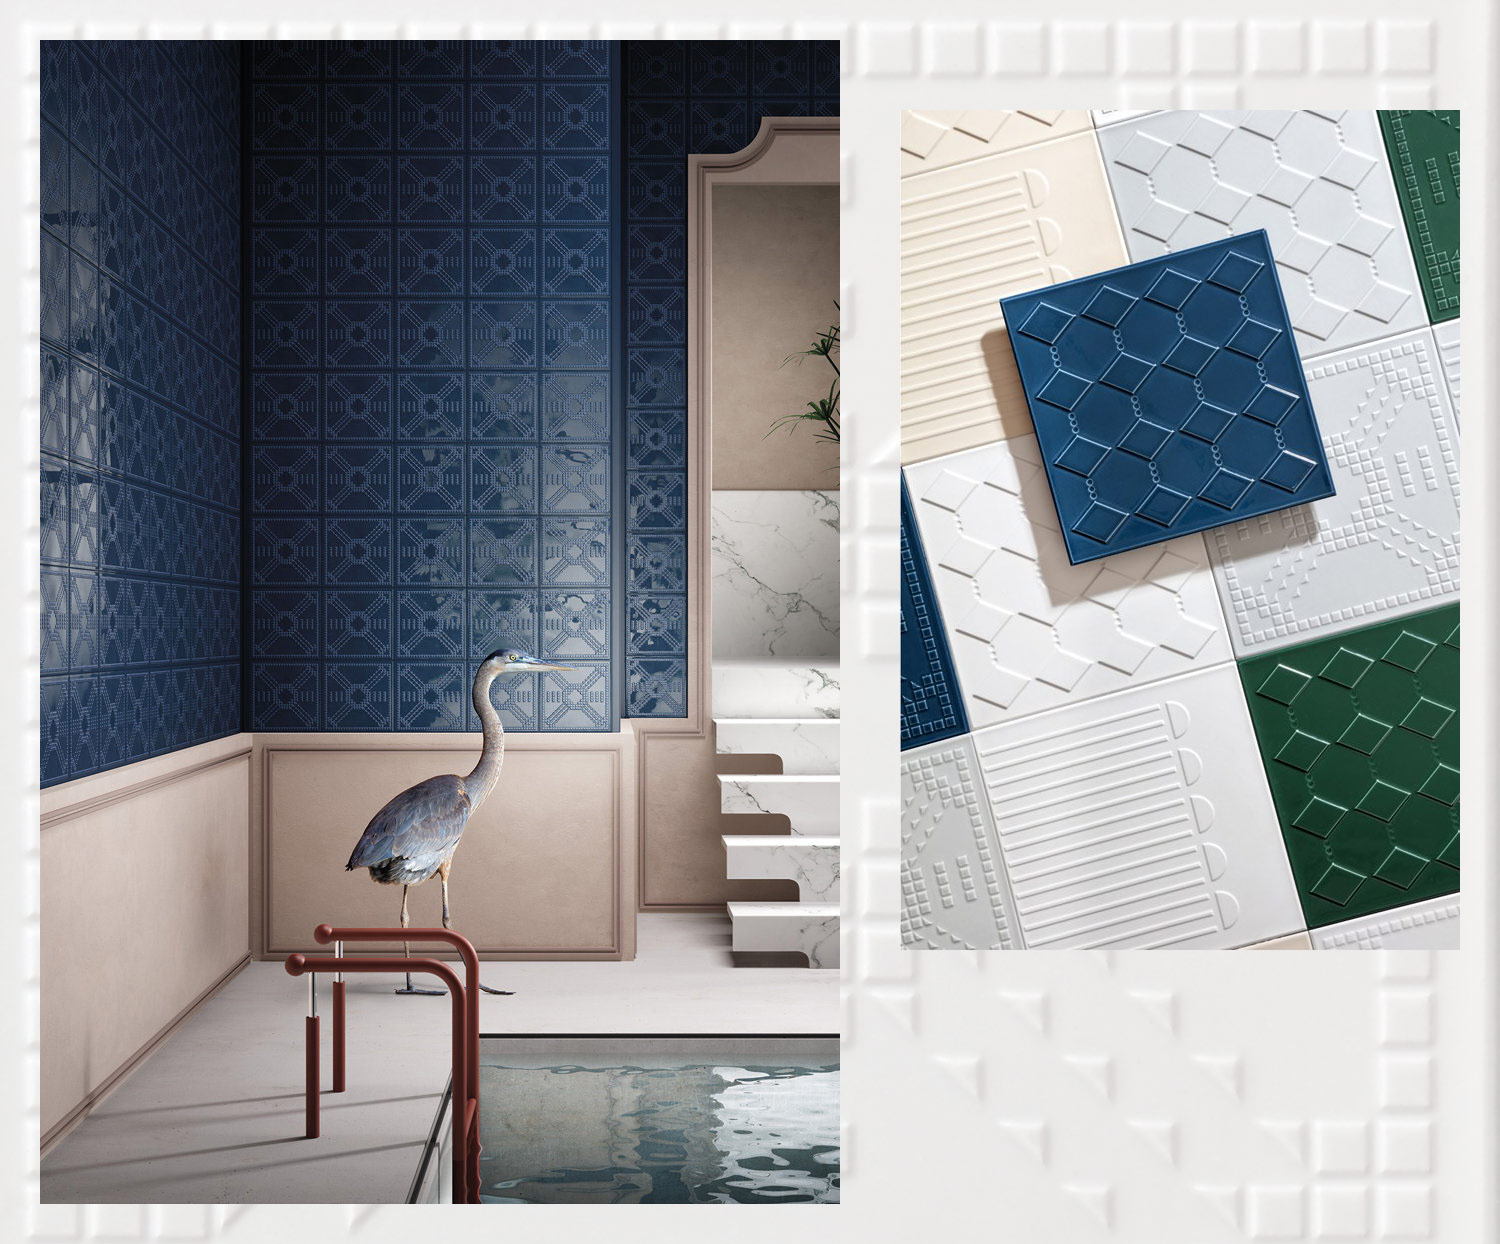 Tile trends for 2019 Ceramica Vogue - www.authenticinterior.com BLOG